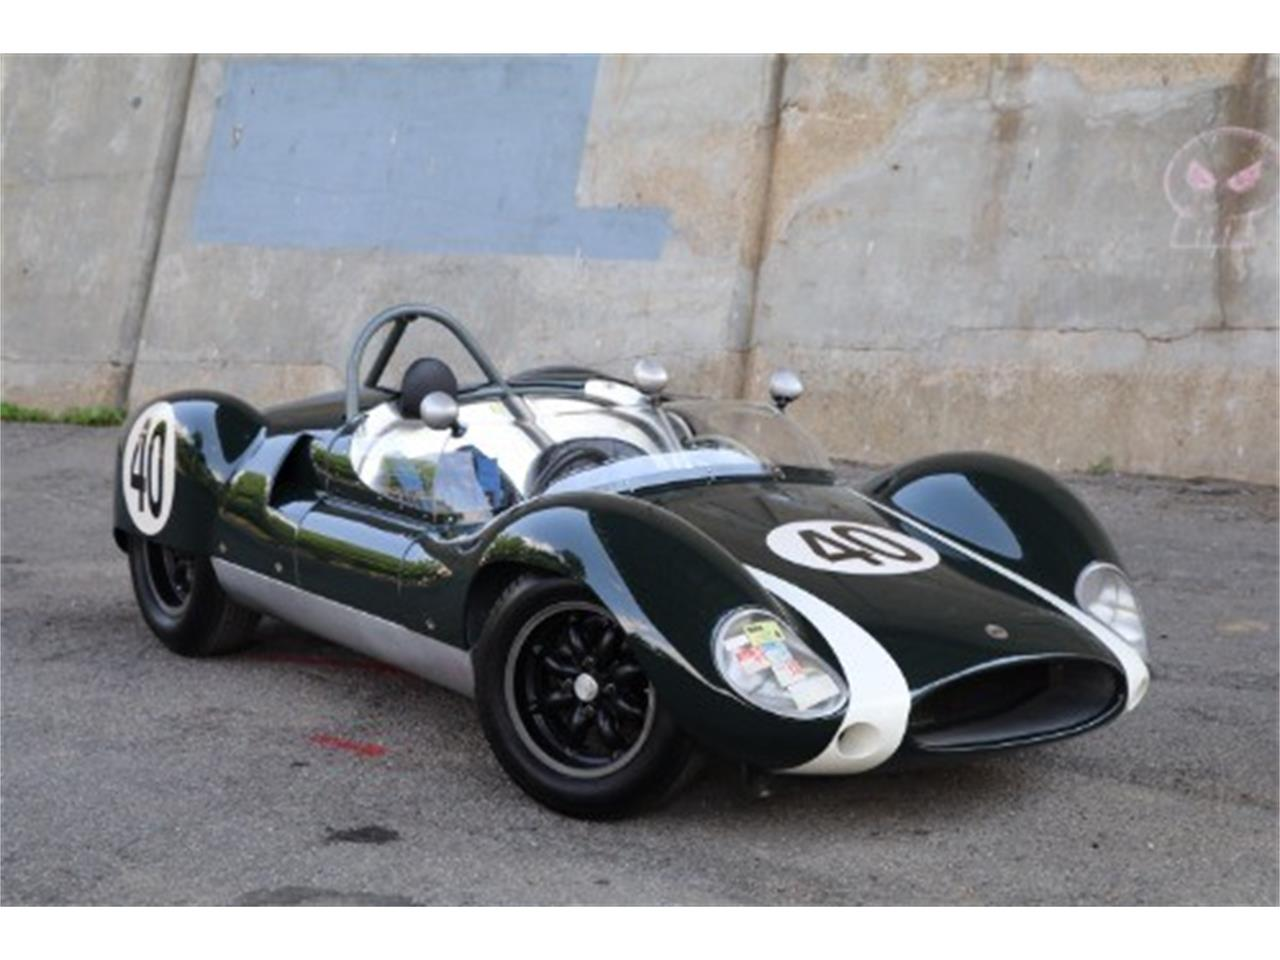 Race Cars For Sale >> For Sale 1961 Cooper Race Car In Astoria New York